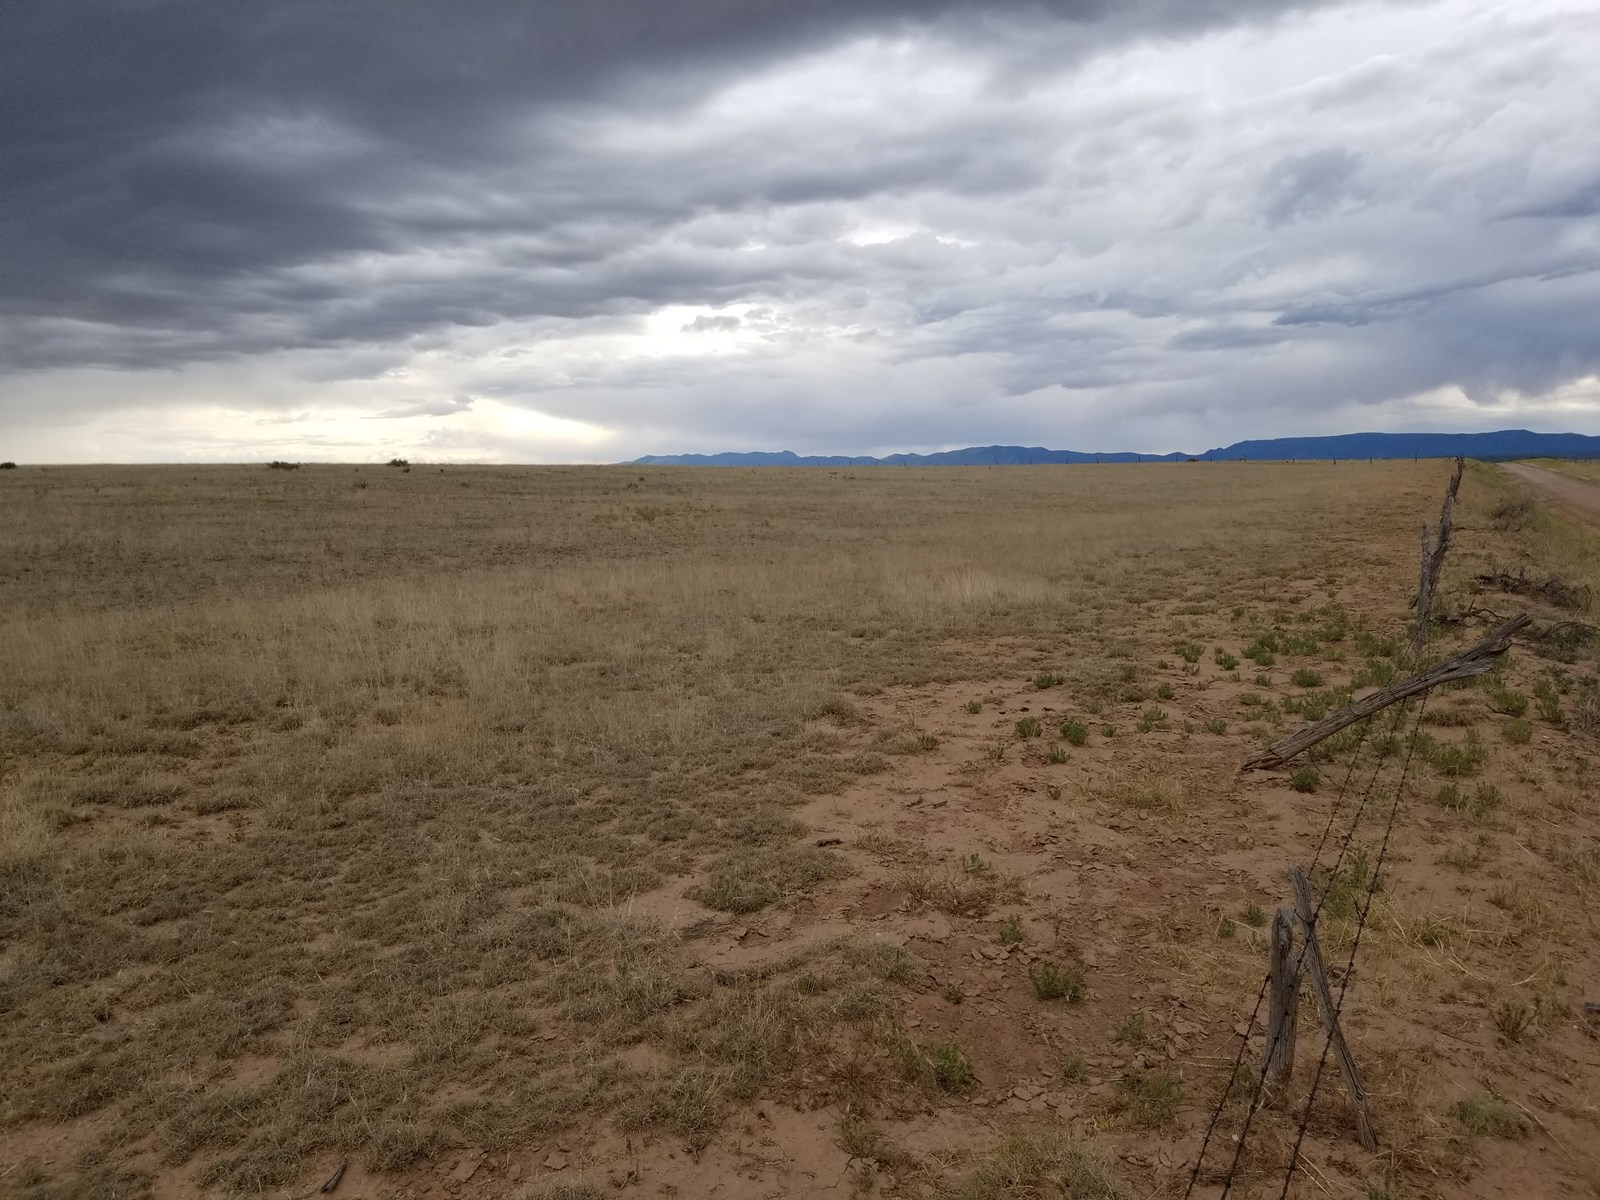 Central NM Ranch Land For Sale Acreage Estancia Valley